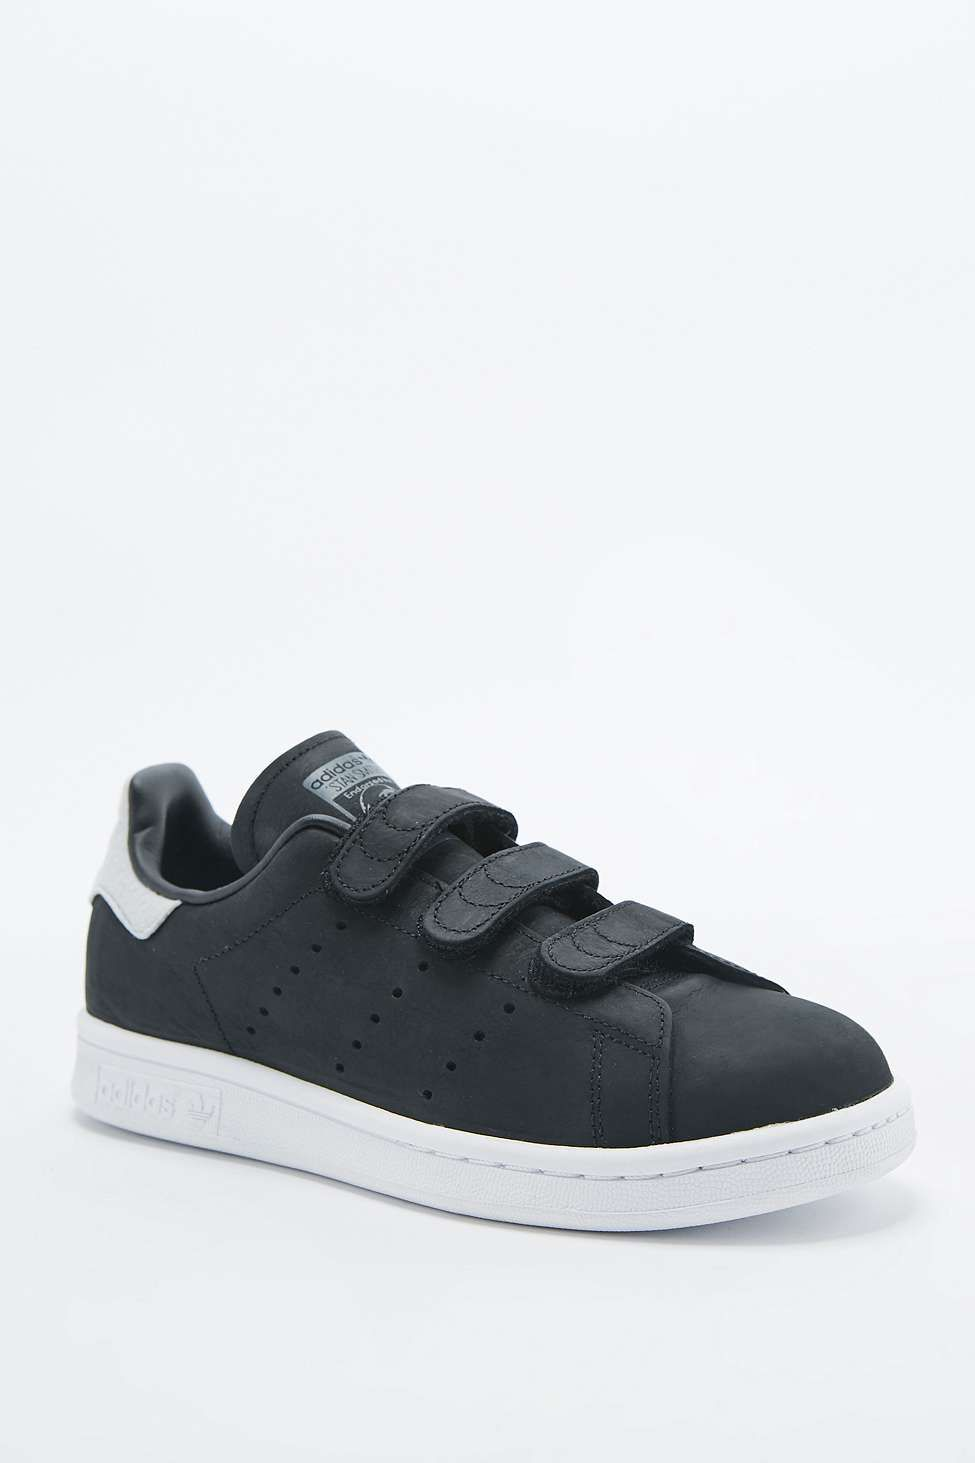 adidas Originals Stan Smith Black Velcro Trainers    3   Pinterest ... c7400ce6eca1